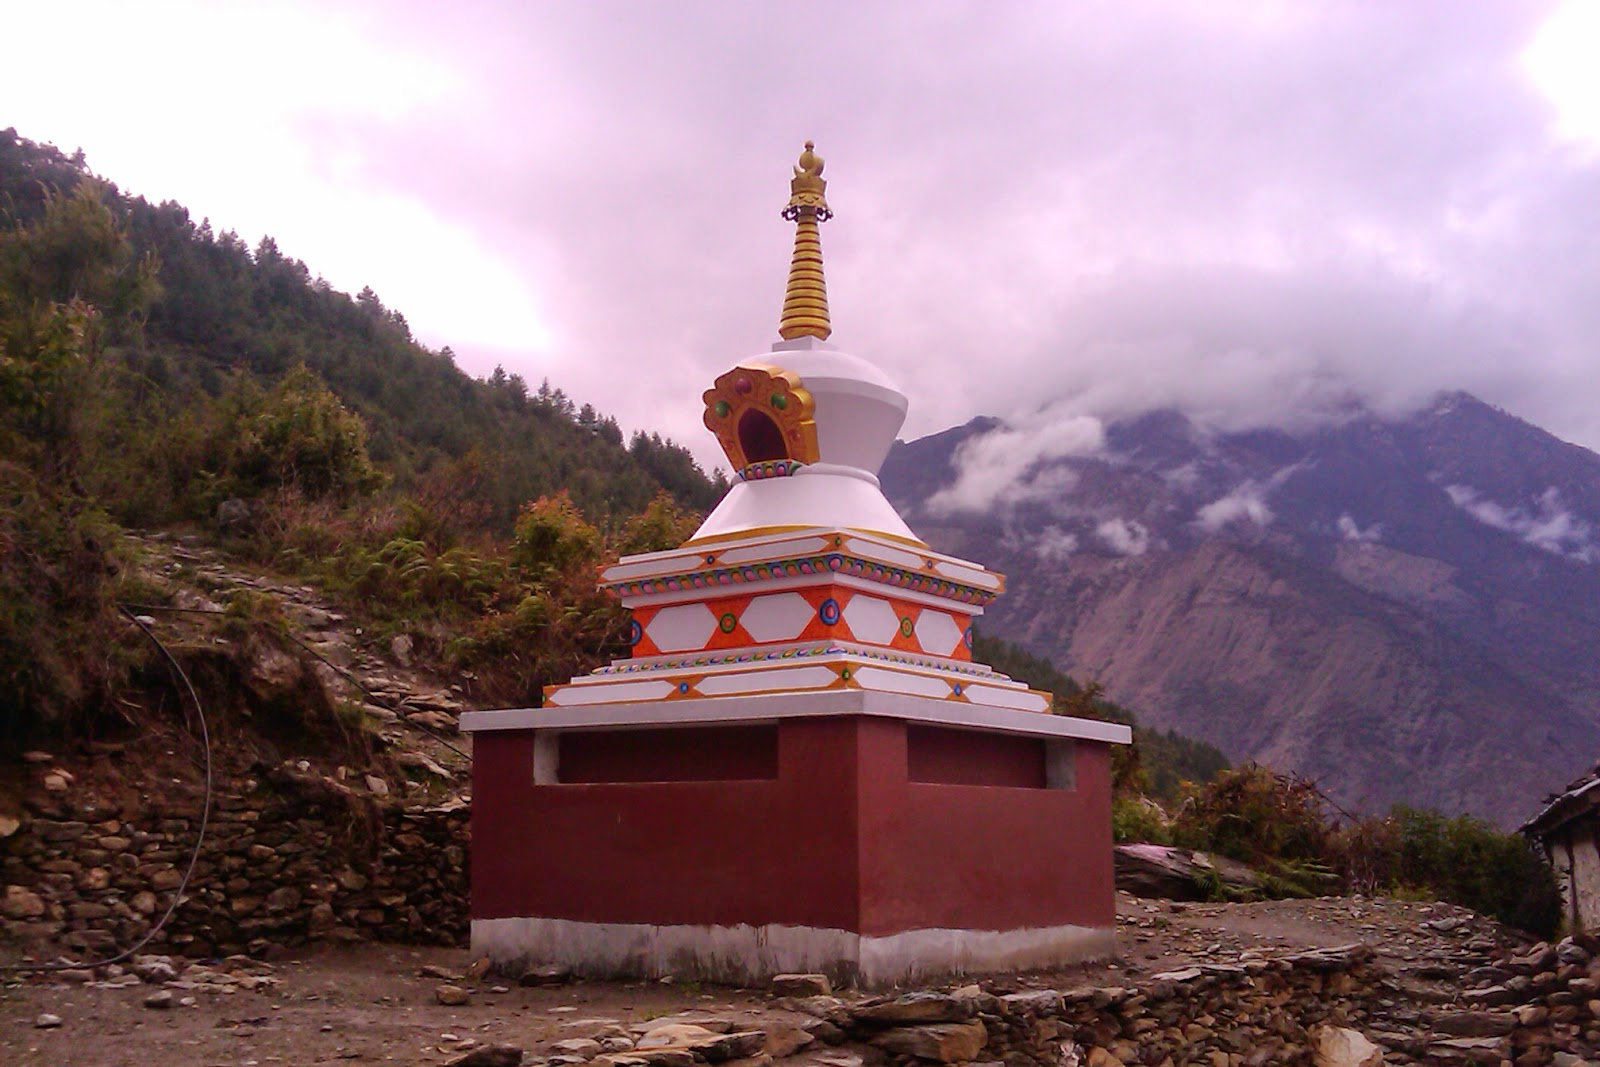 Stupa, Rasuwa District, Nepal (built by Losang Namgyal Rinpoche)